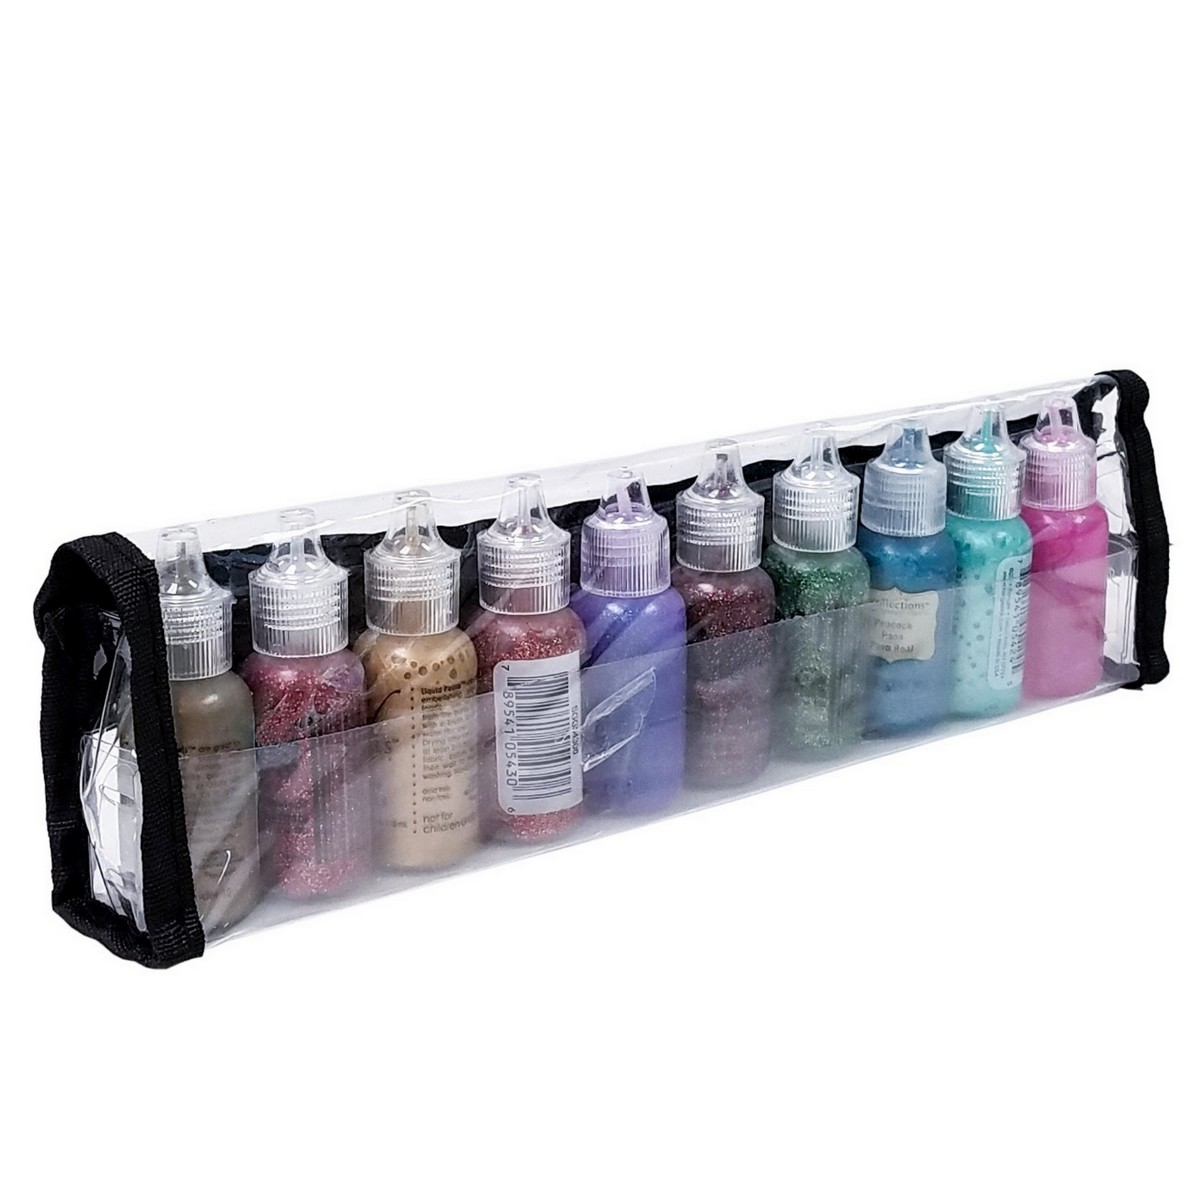 Teresa Buddy Bag Organizer BSFP-SNG07